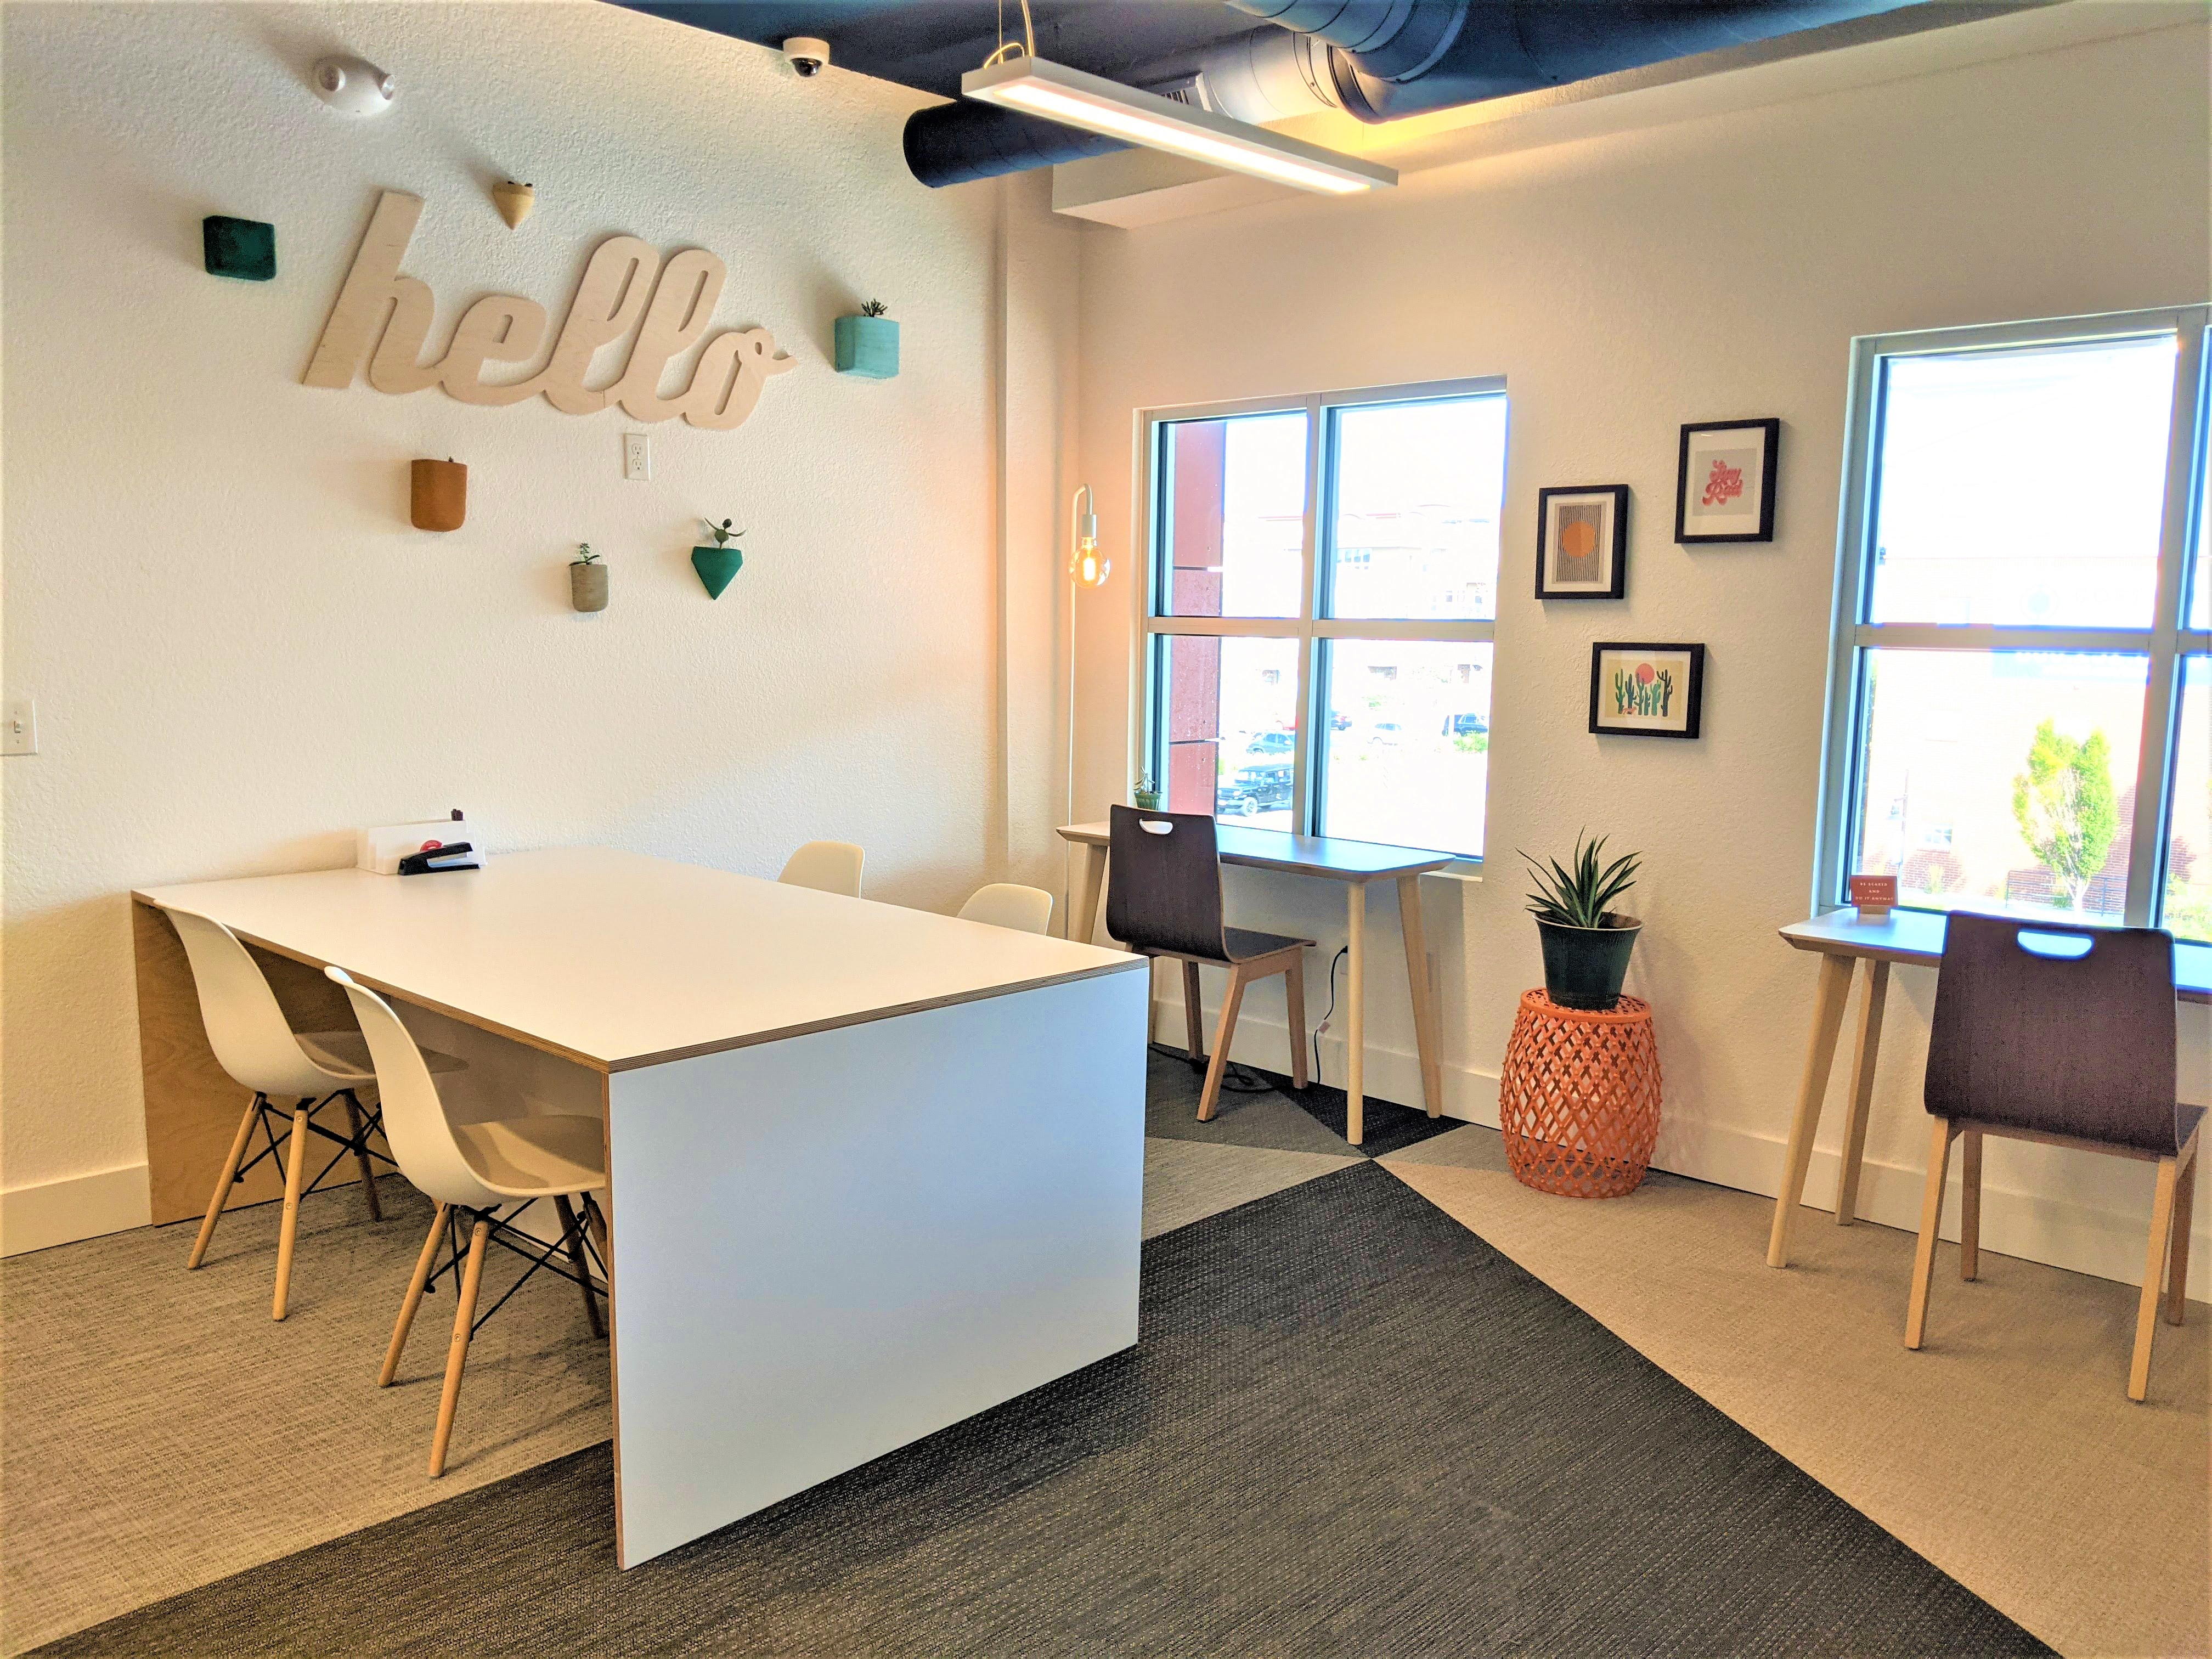 Coworking in the phone booth, perfect for remote workers.